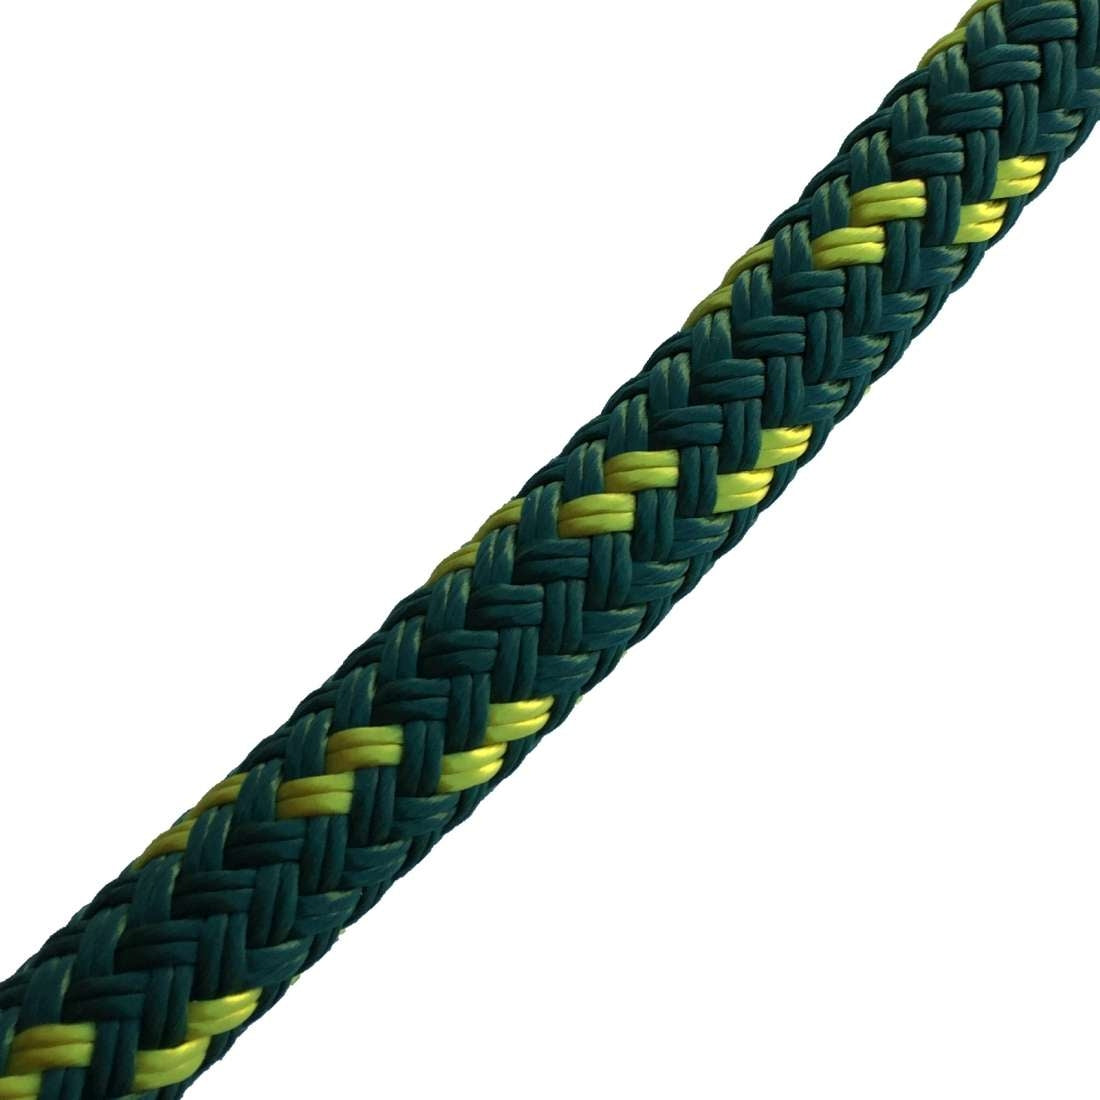 TTS Reins Yacht Braid 14mm x 2.1m with Leather Slobber Straps